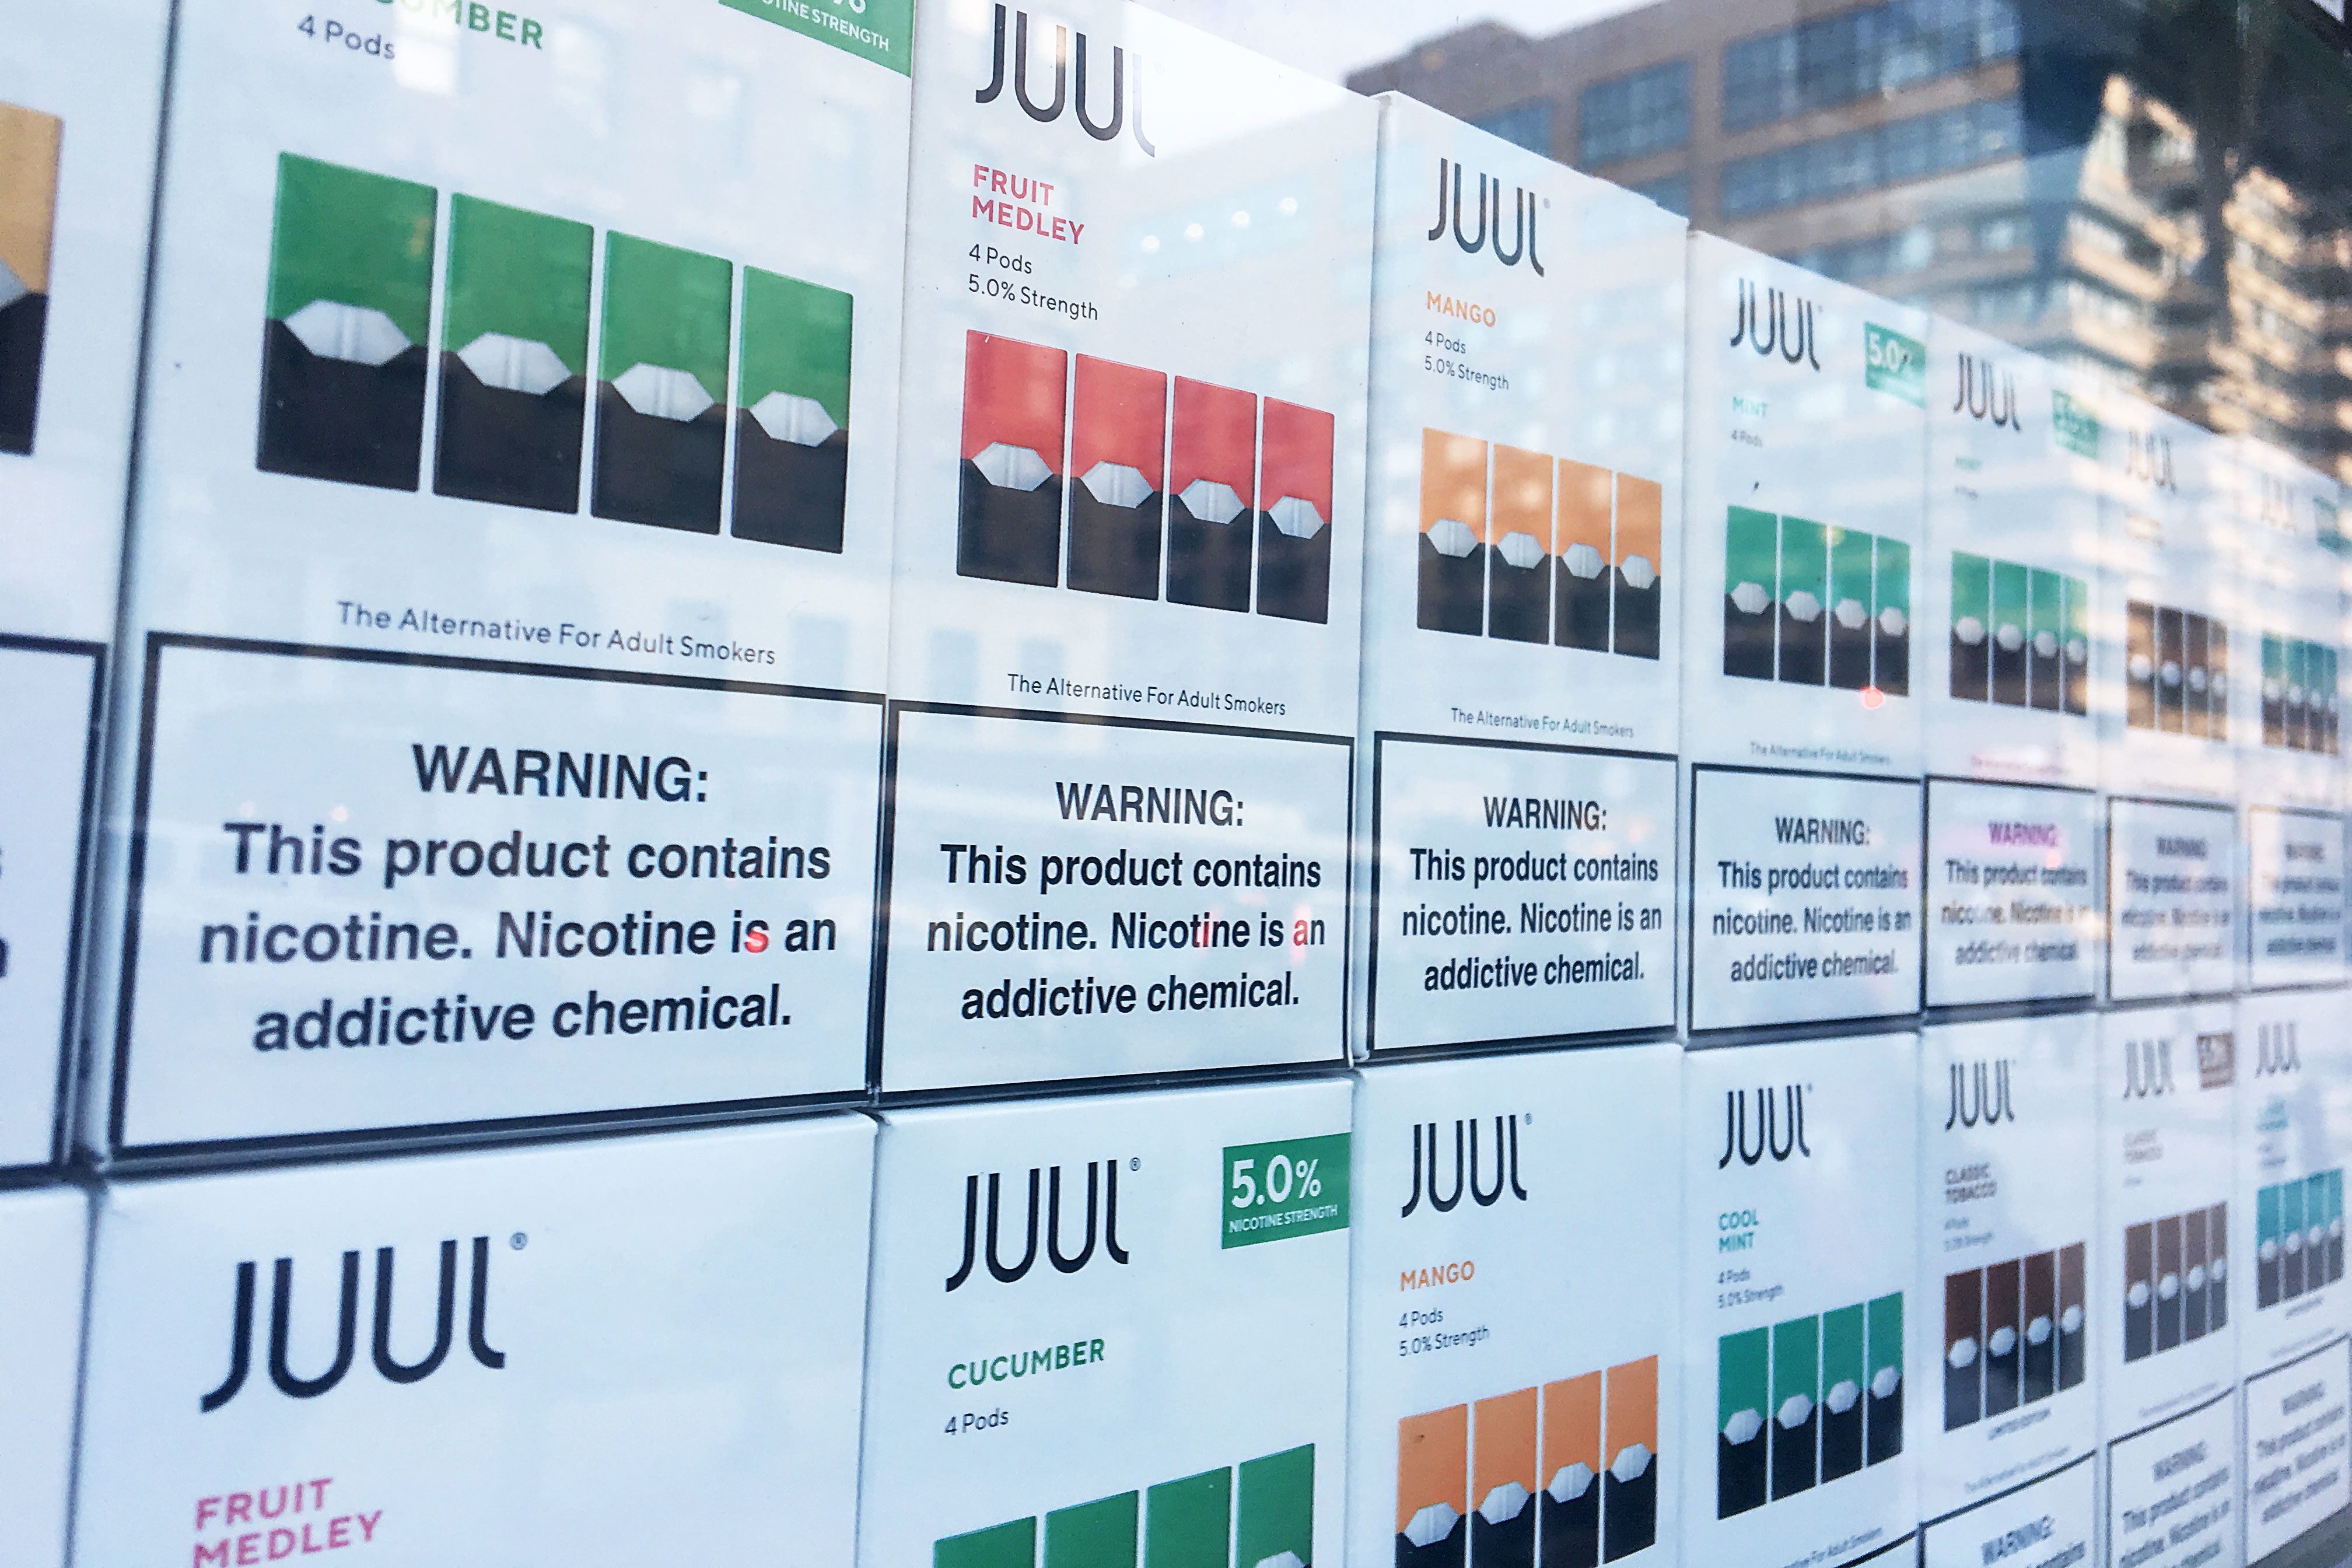 FDA 'stands ready' to accelerate review of e-cigarettes